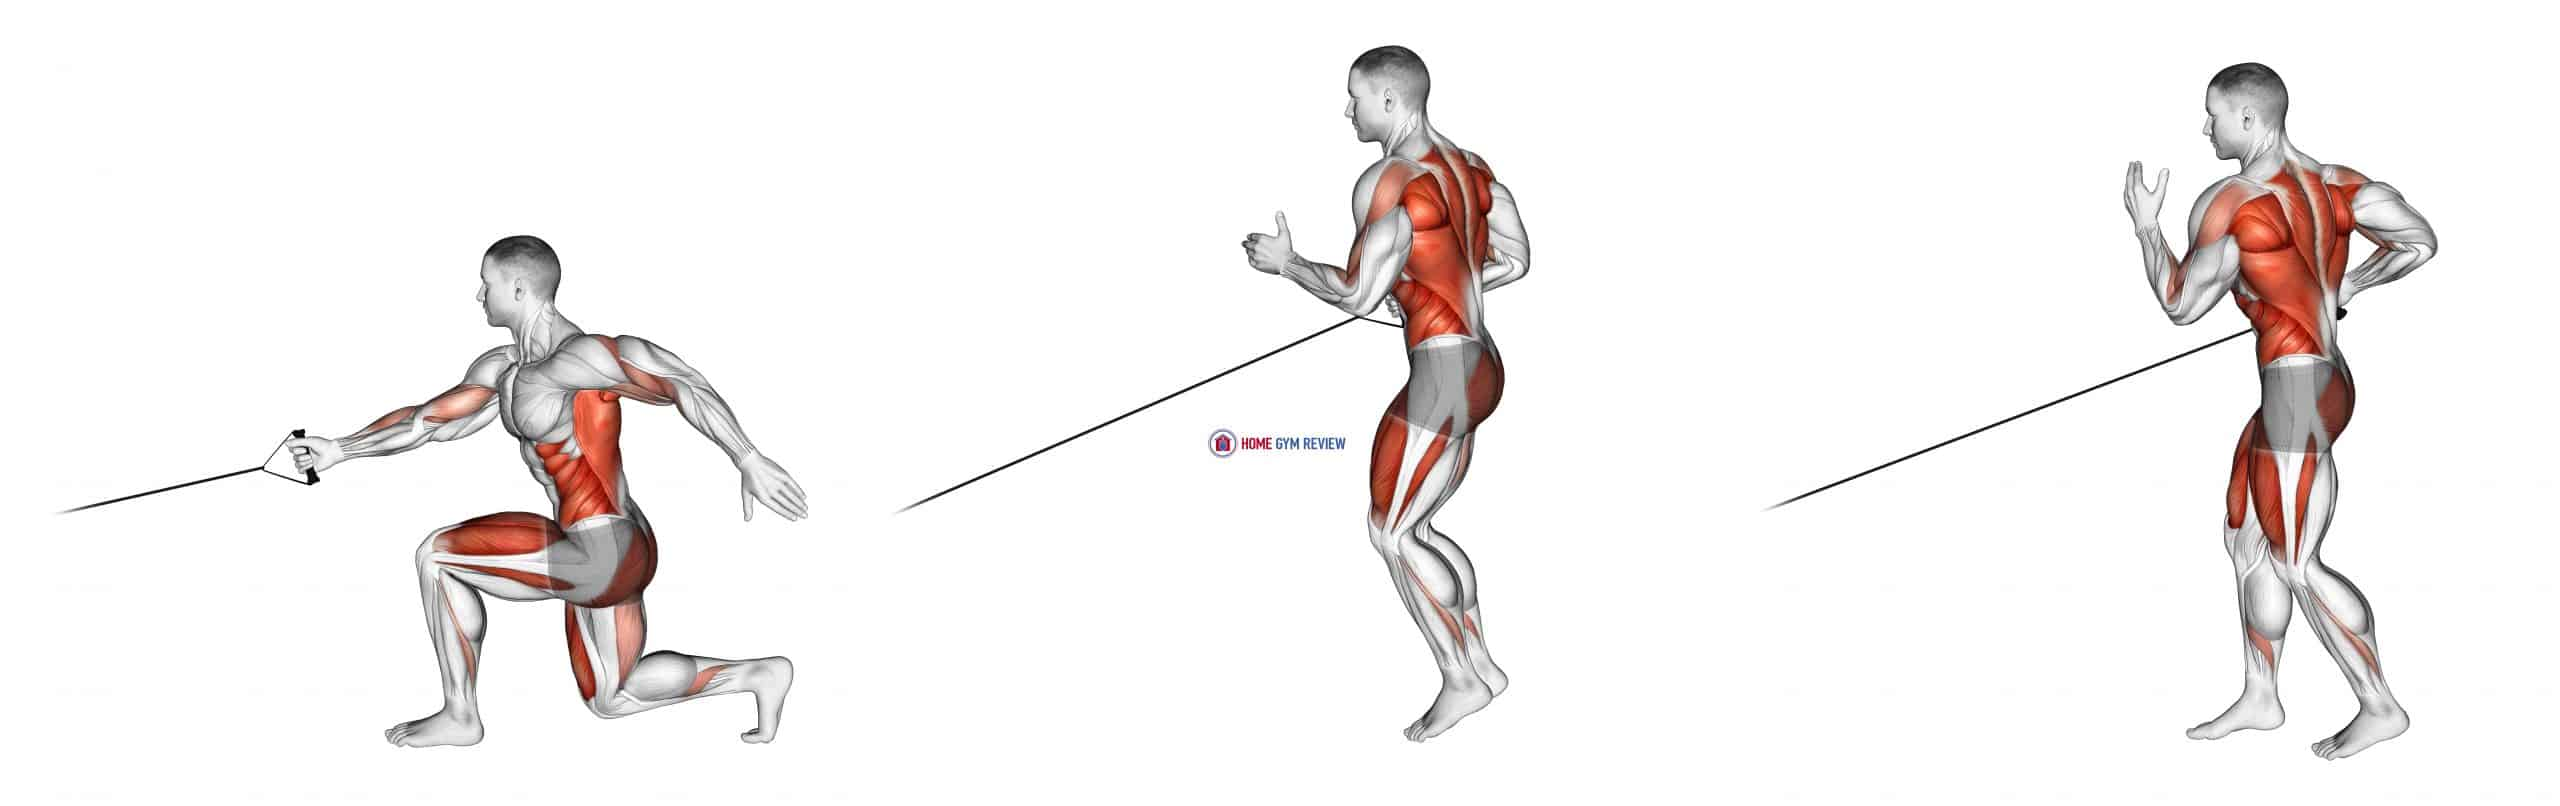 Band Jump Lunge with Single Arm Row